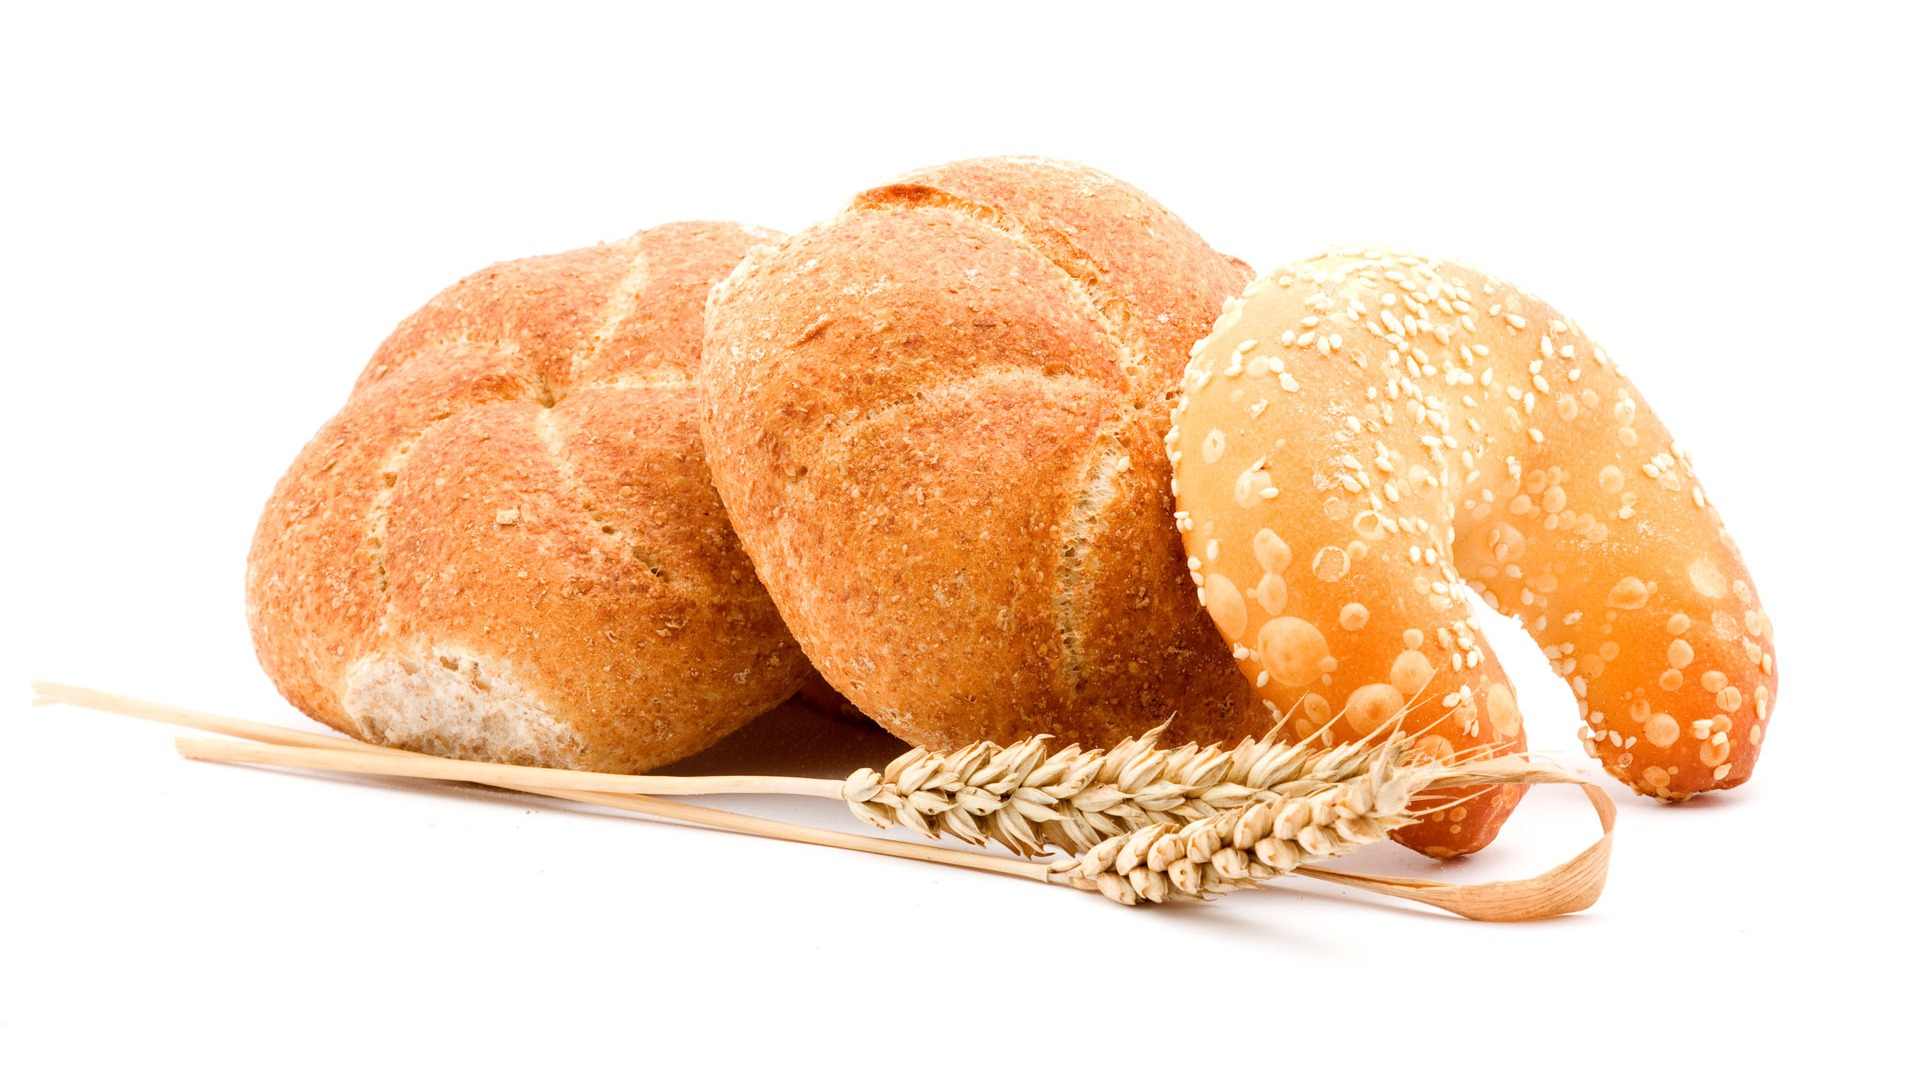 Bread Wallpaper Posted By Christopher Cunningham